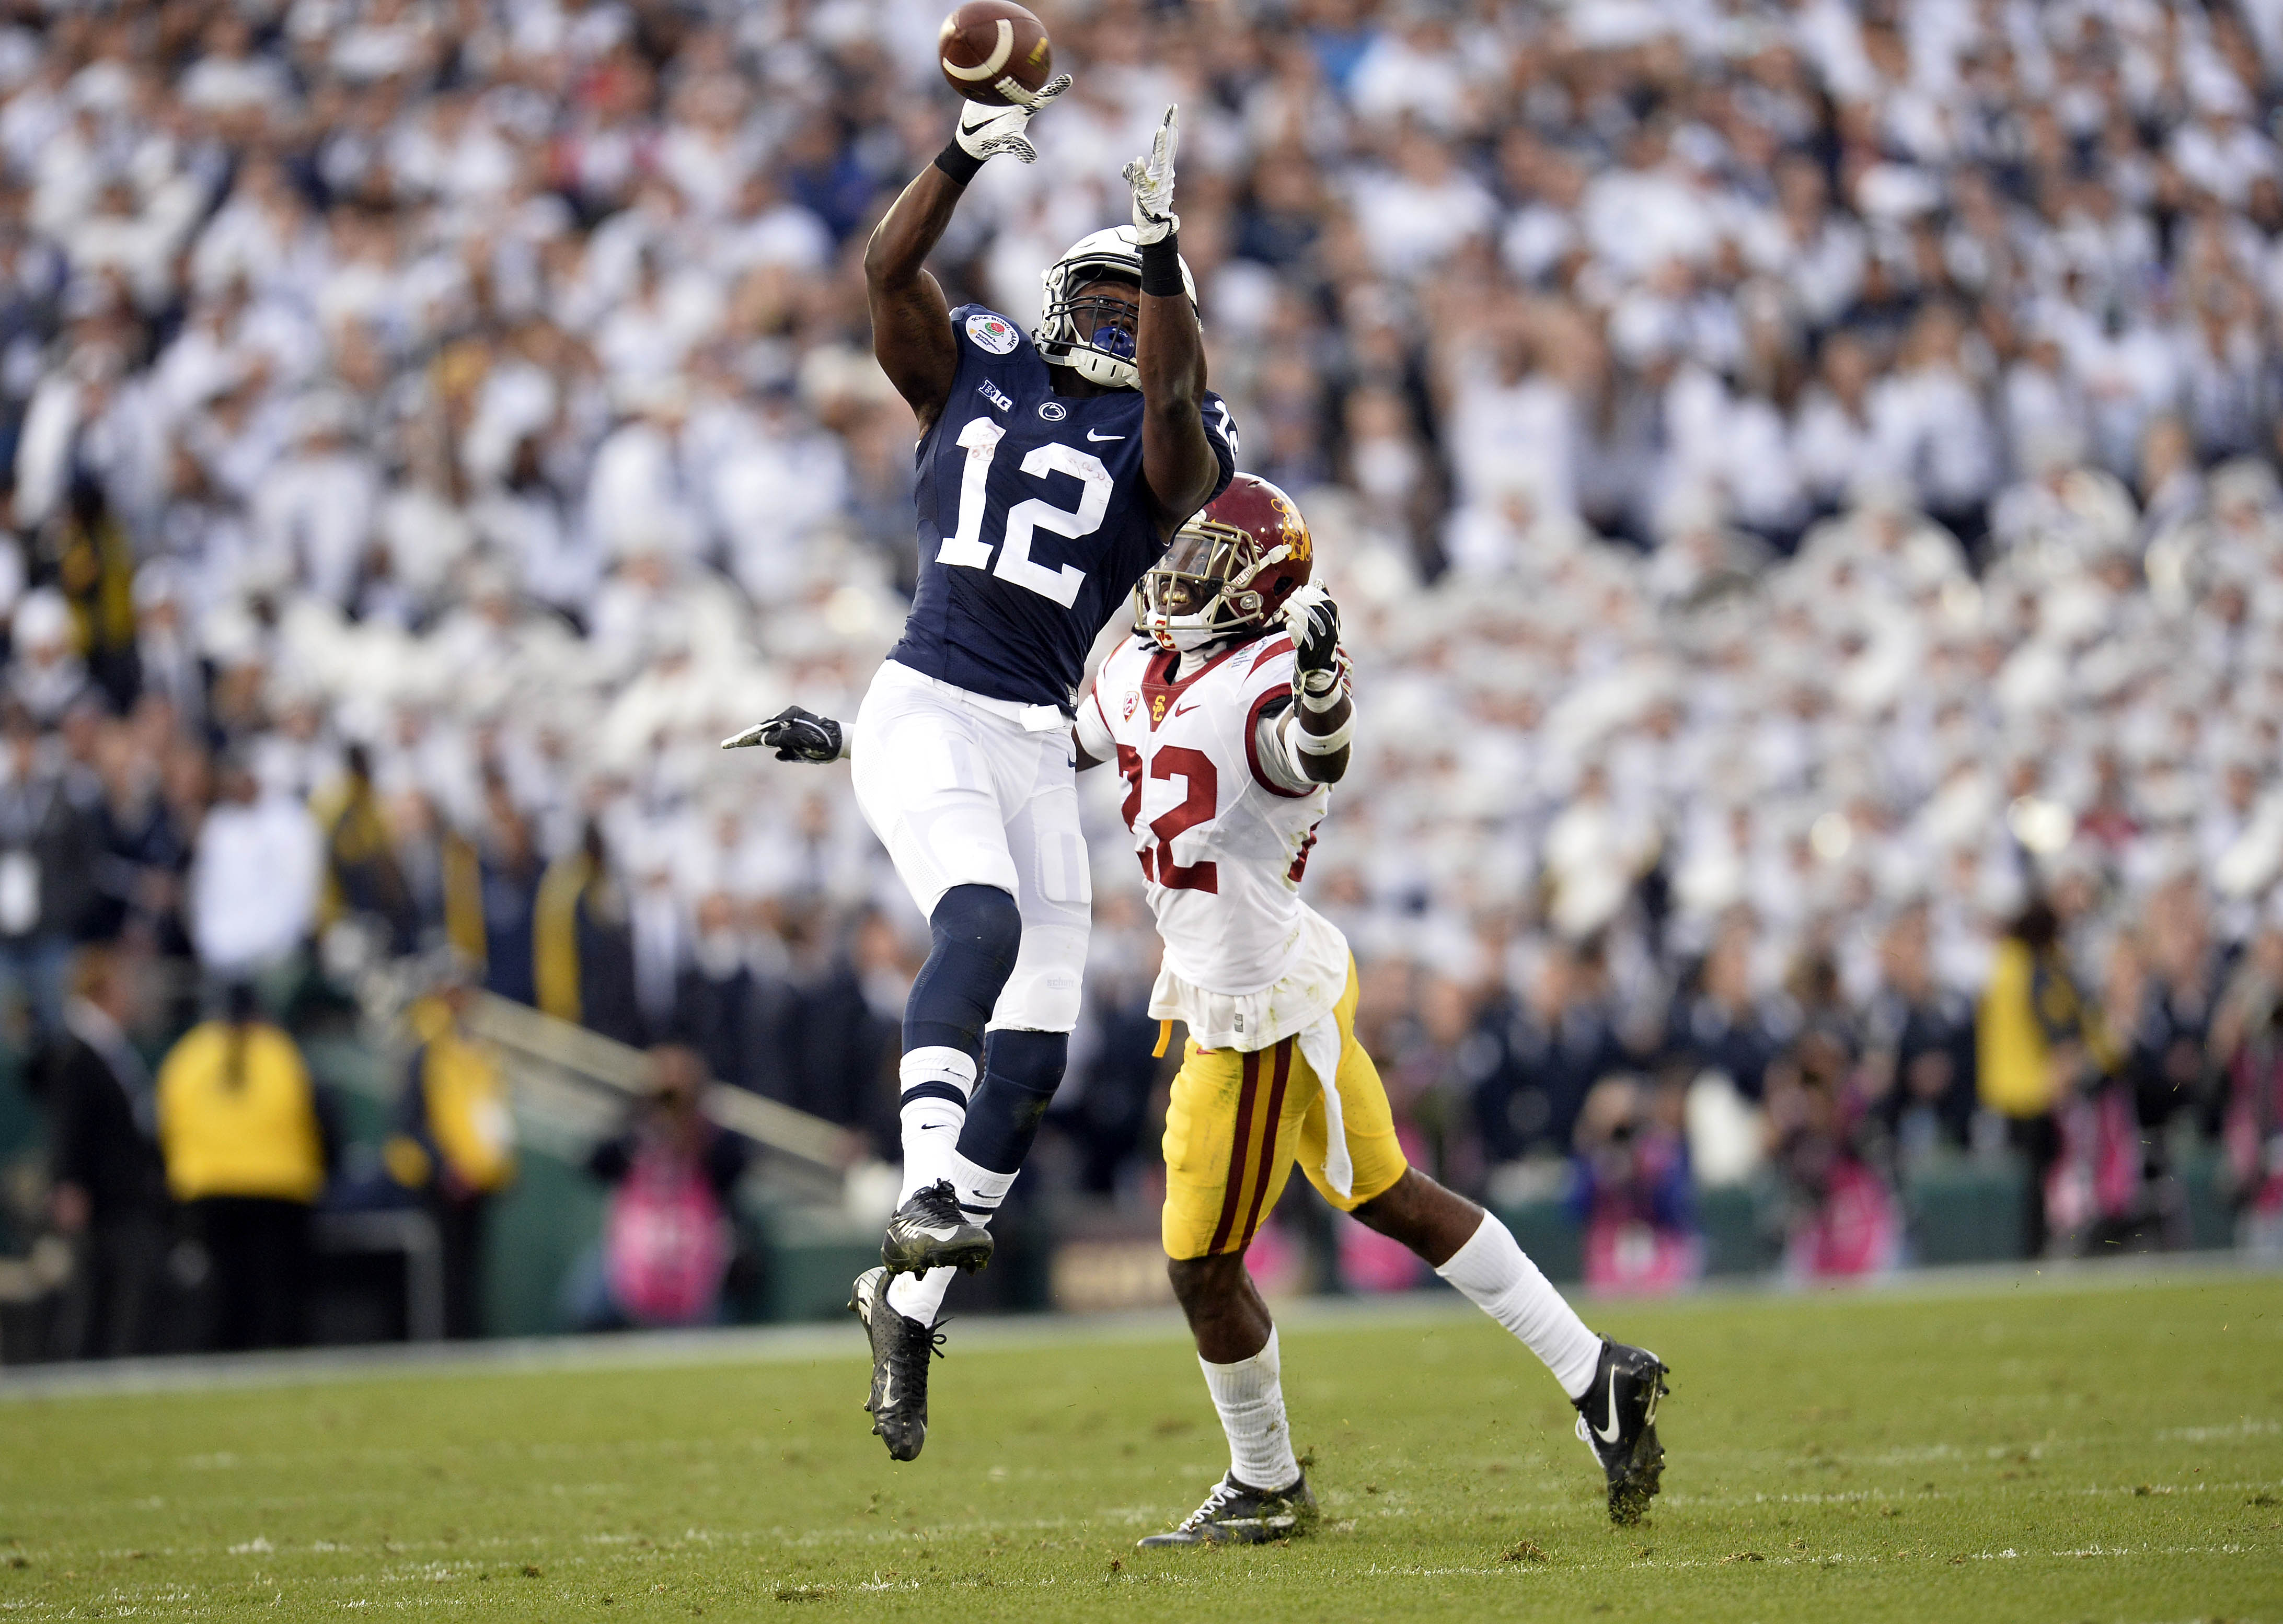 9784756-ncaa-football-rose-bowl-game-penn-state-vs-southern-california